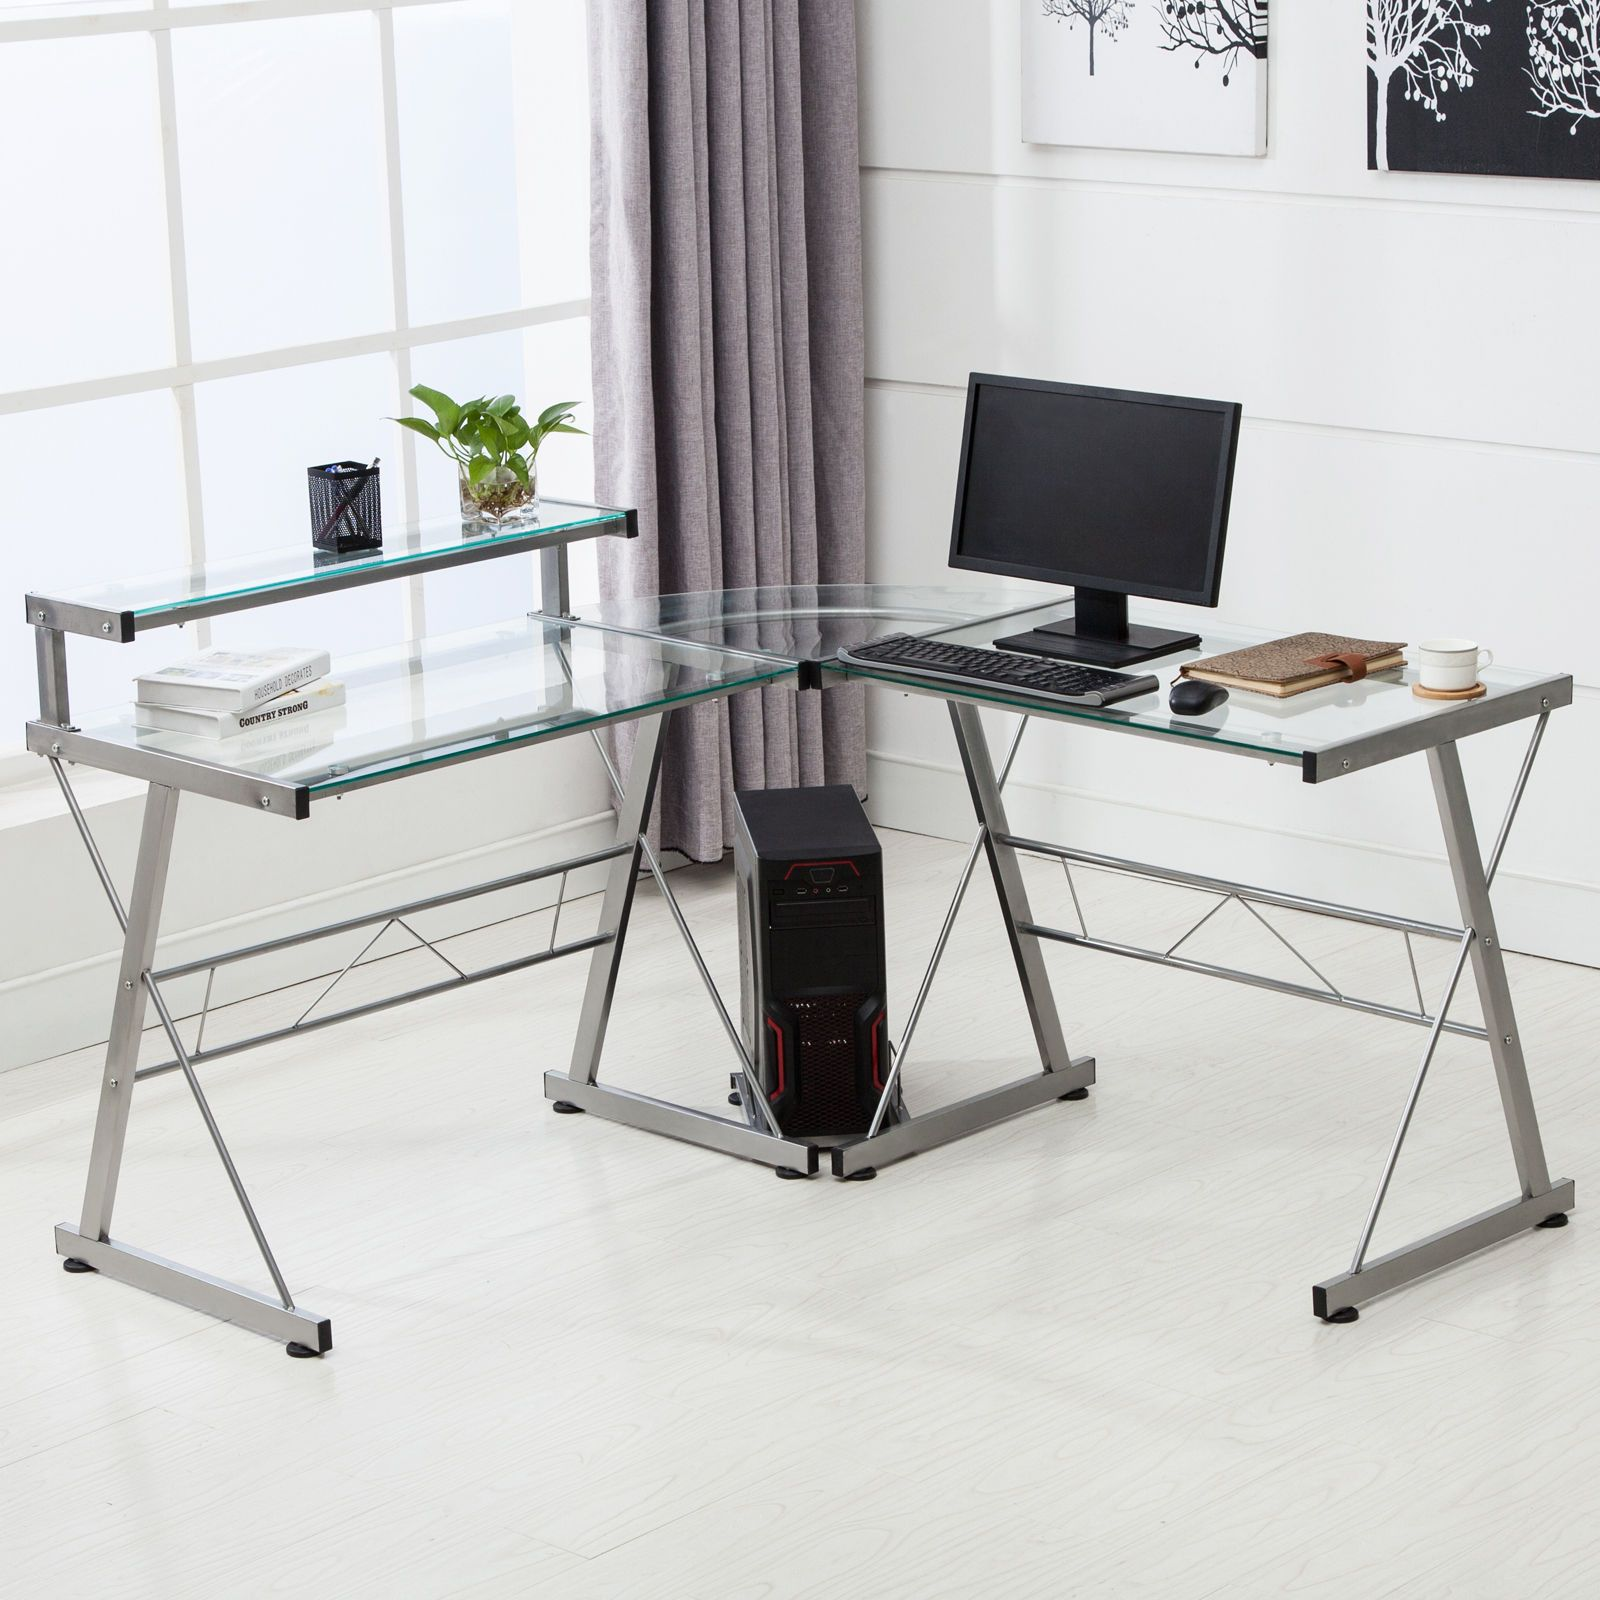 - Pin By Annora On Round End Table Computer Desk With Shelves